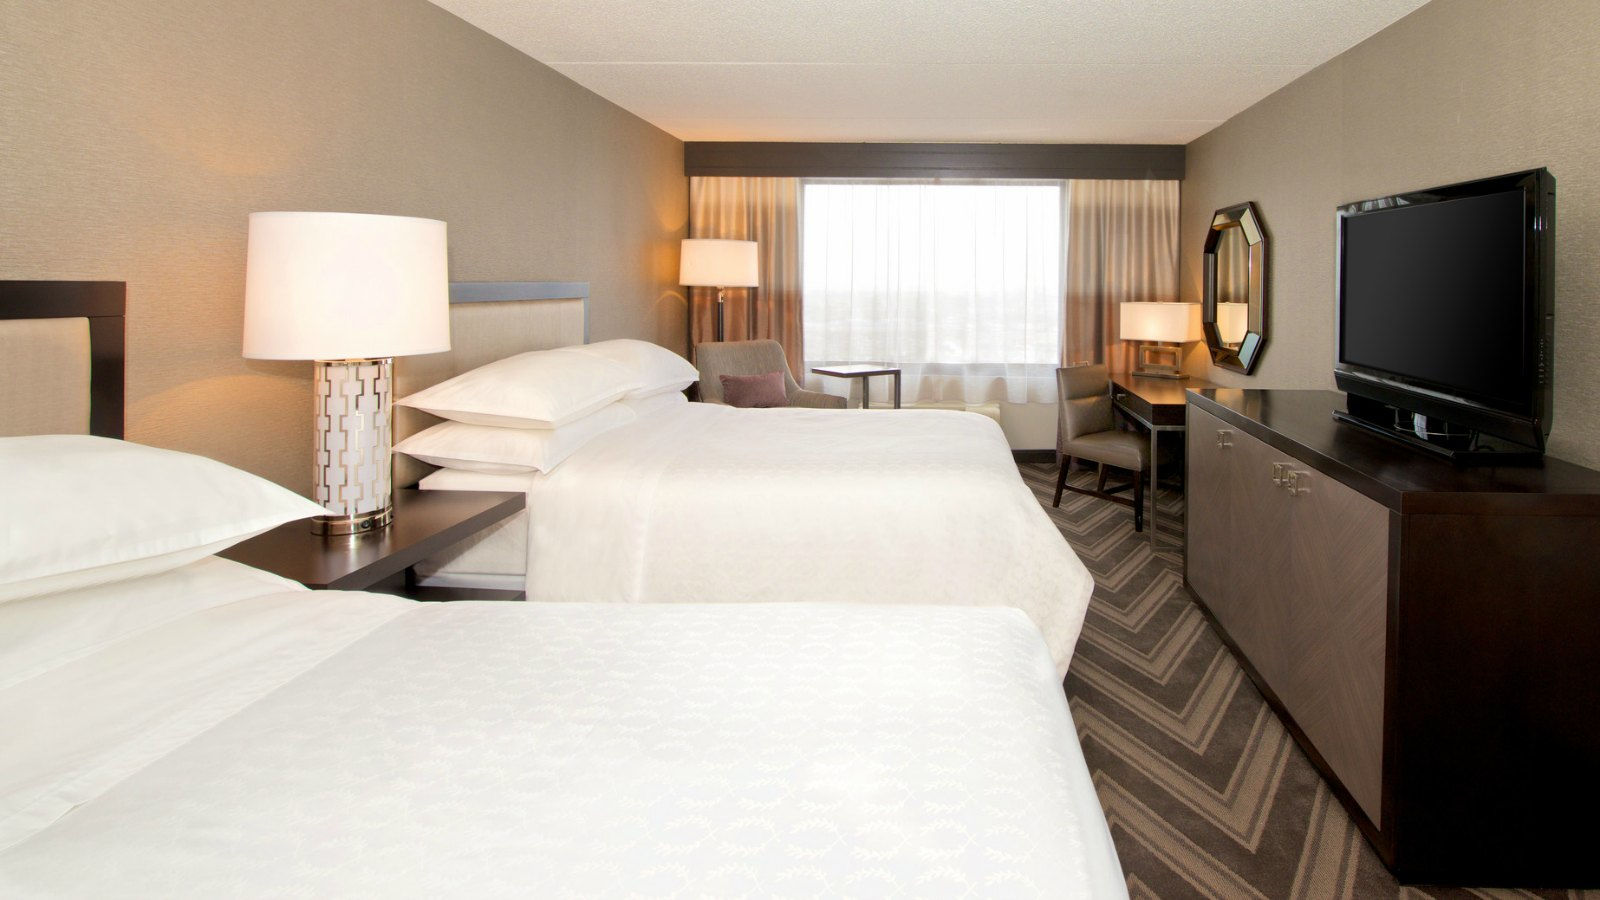 Mitzvahs | Sheraton Bucks County Hotel Guest Room